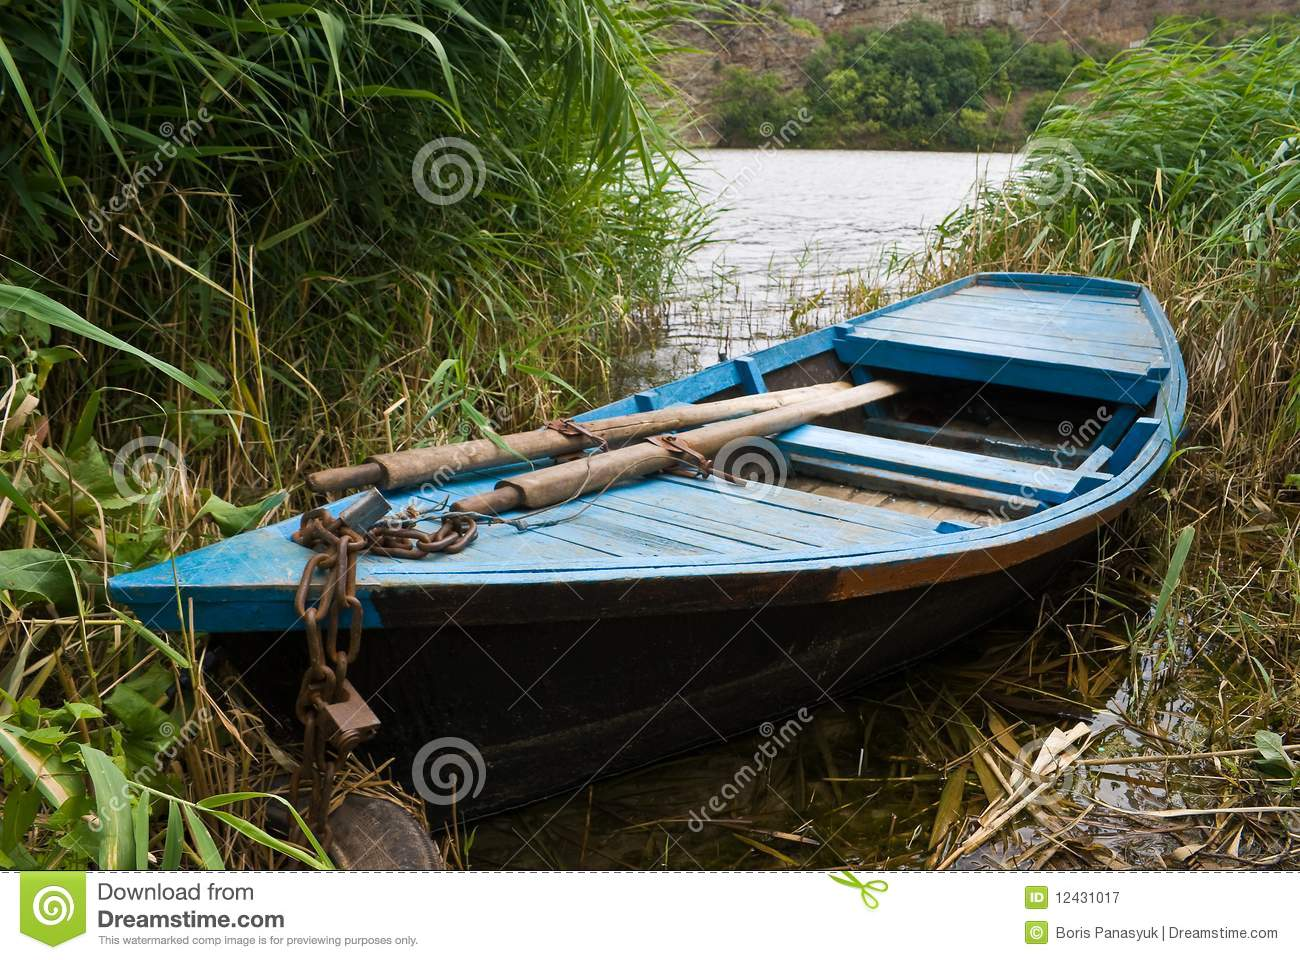 Old wooden fishing boat stock image. Image of reeds, fishing - 12431017